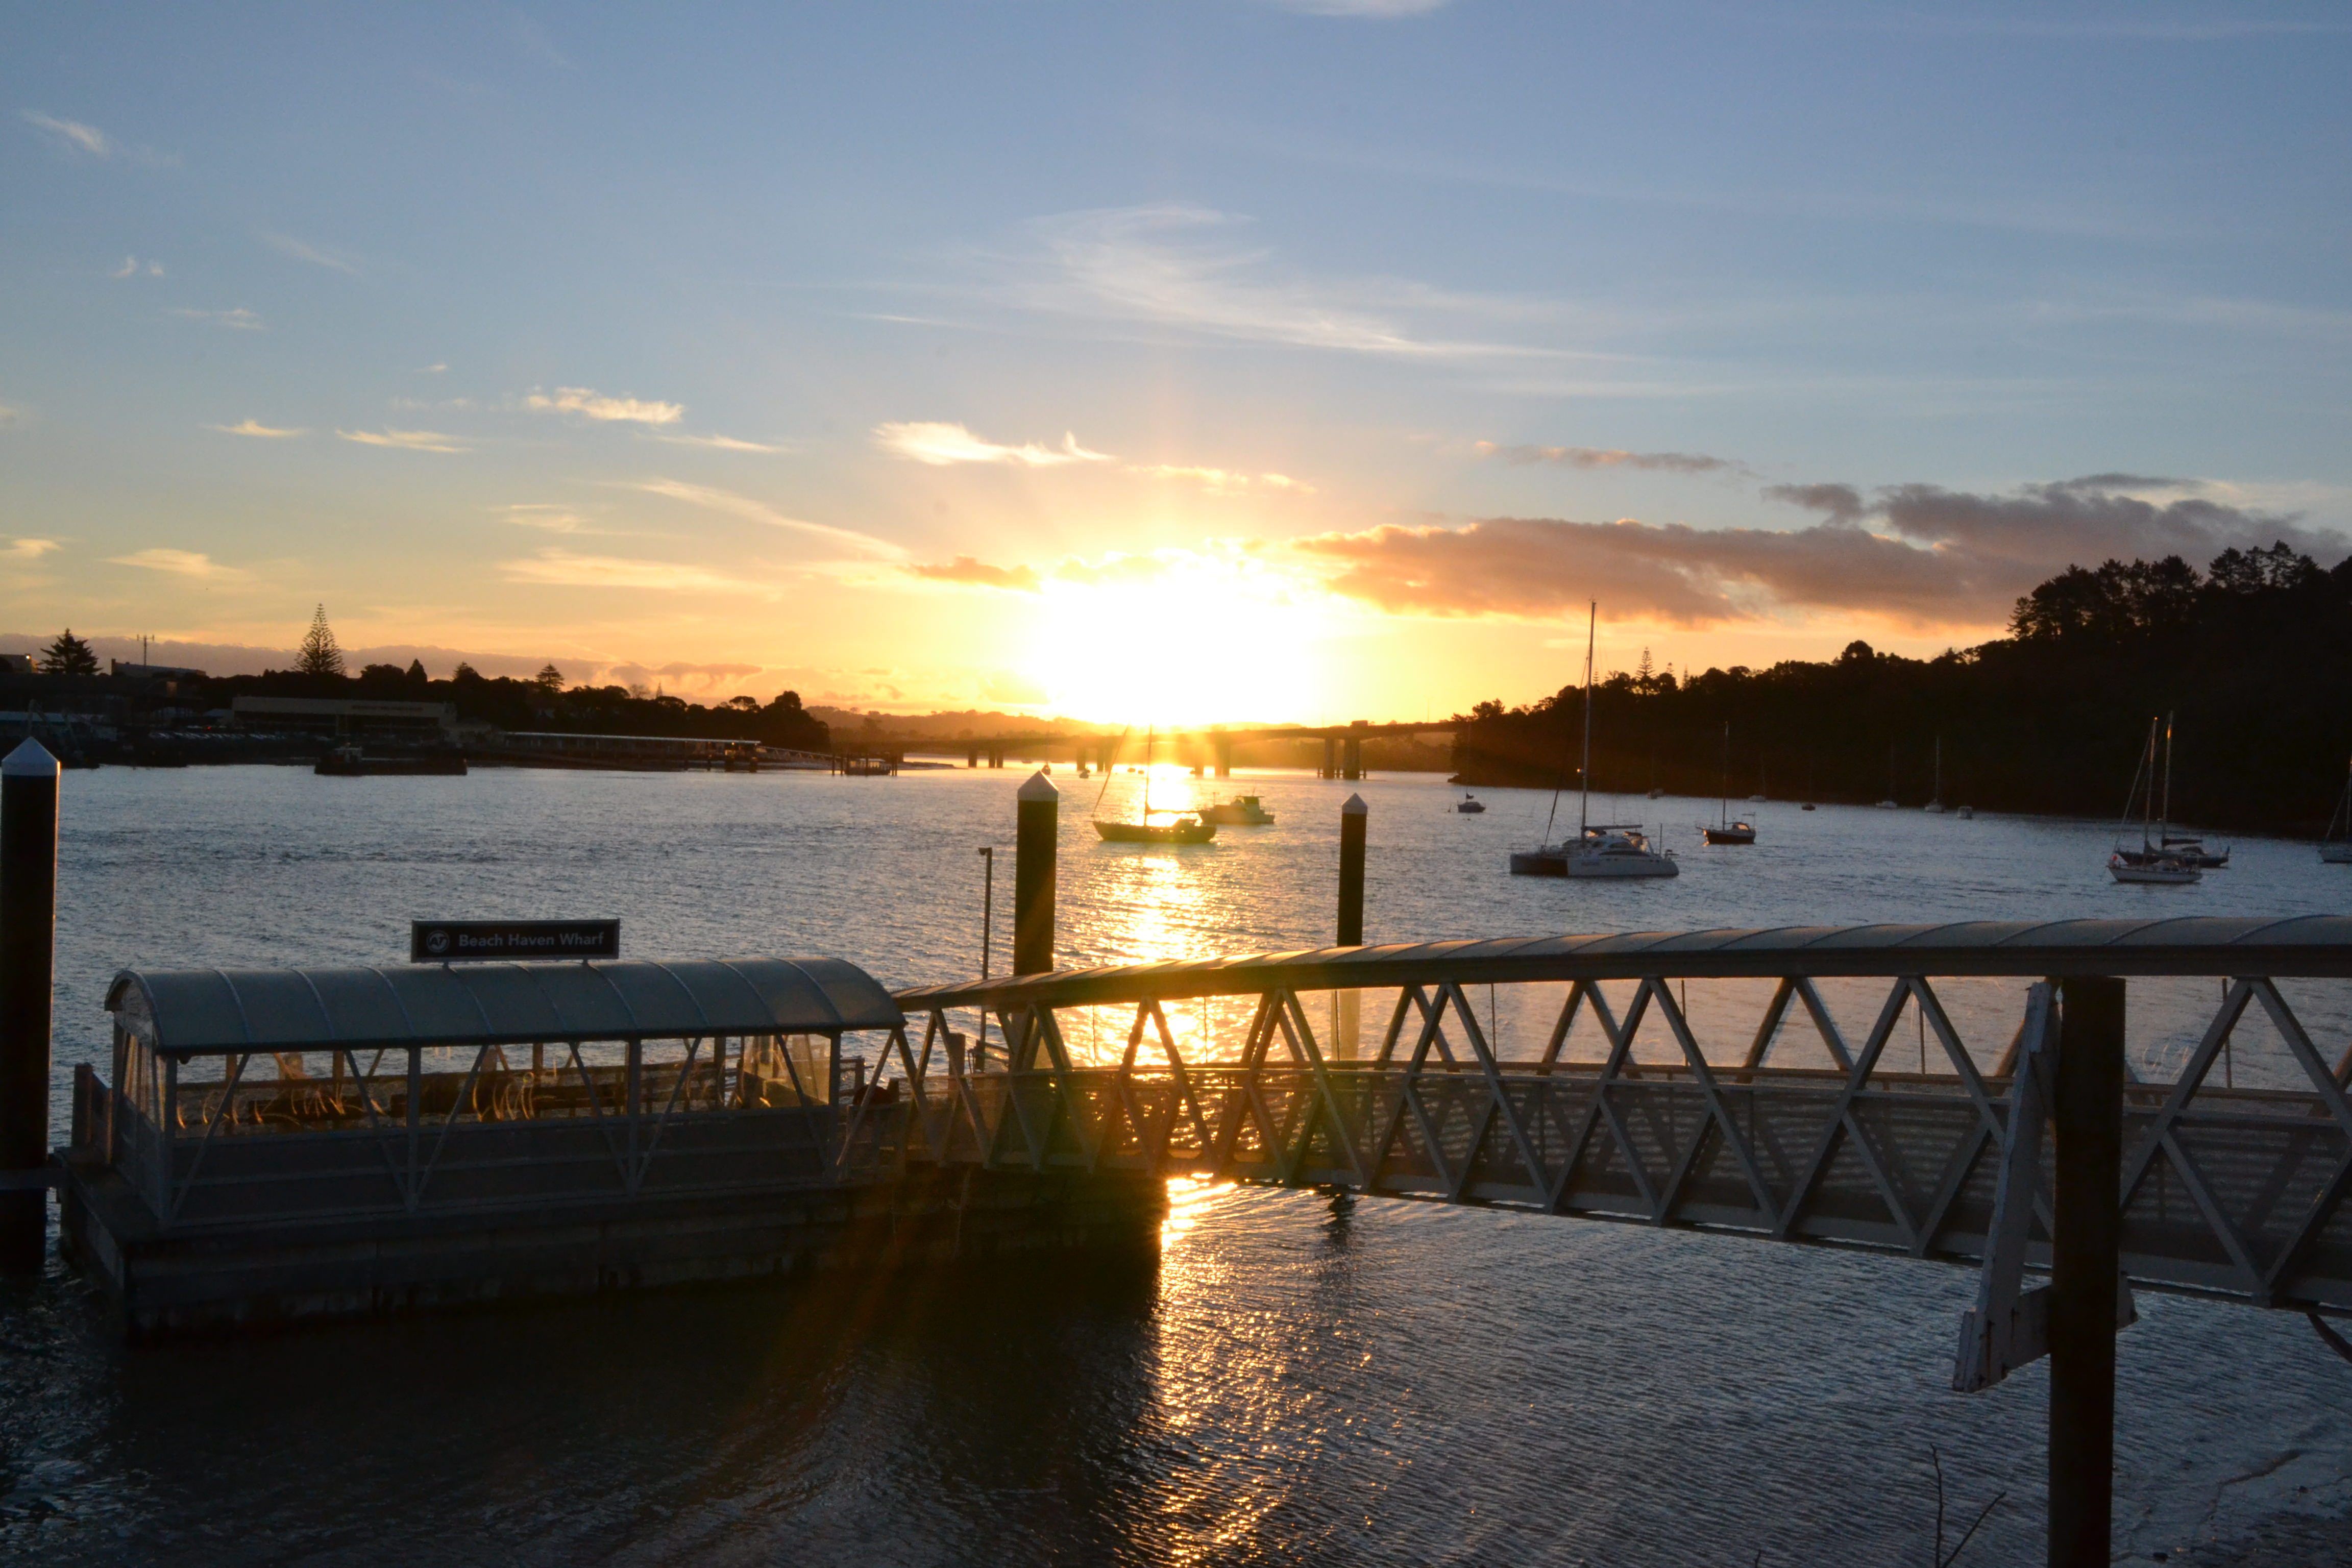 Sunset at Birkenhead